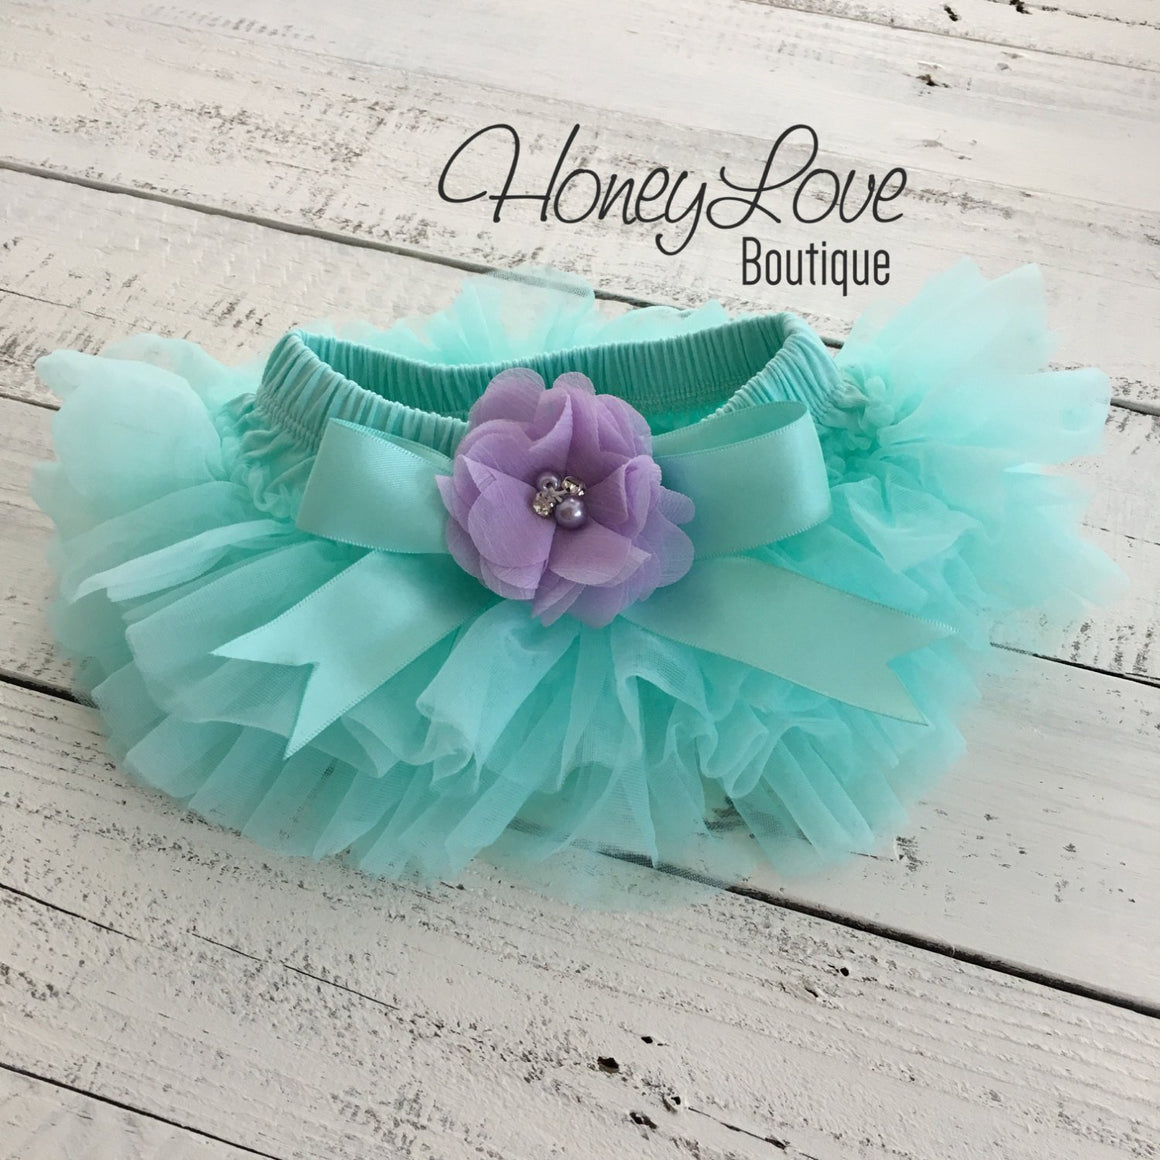 PERSONALIZED gold glitter heart arrow name bodysuit, mint/aqua tutu skirt bloomers lavender purple flower newborn baby girl take home set - HoneyLoveBoutique